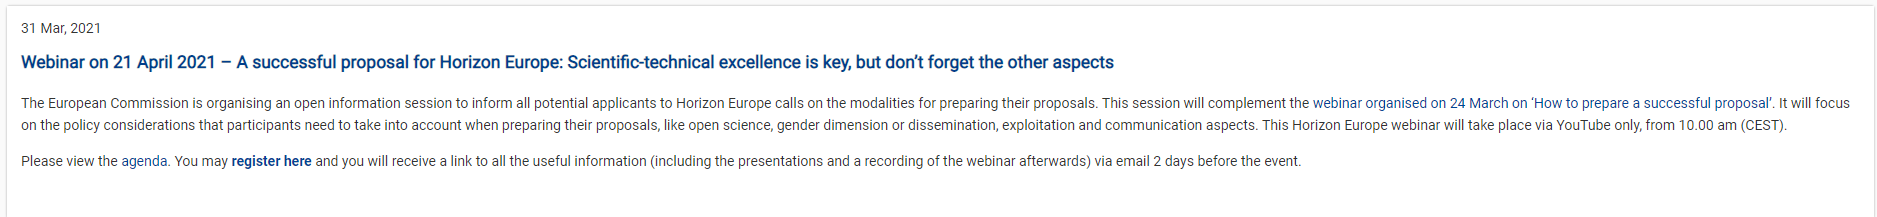 """Webinar για τον Ορίζοντα Ευρώπη από την ΕΕ : """"A successful proposal for Horizon Europe: Scientific-technical excellence is key, but don't forget the other aspects"""""""